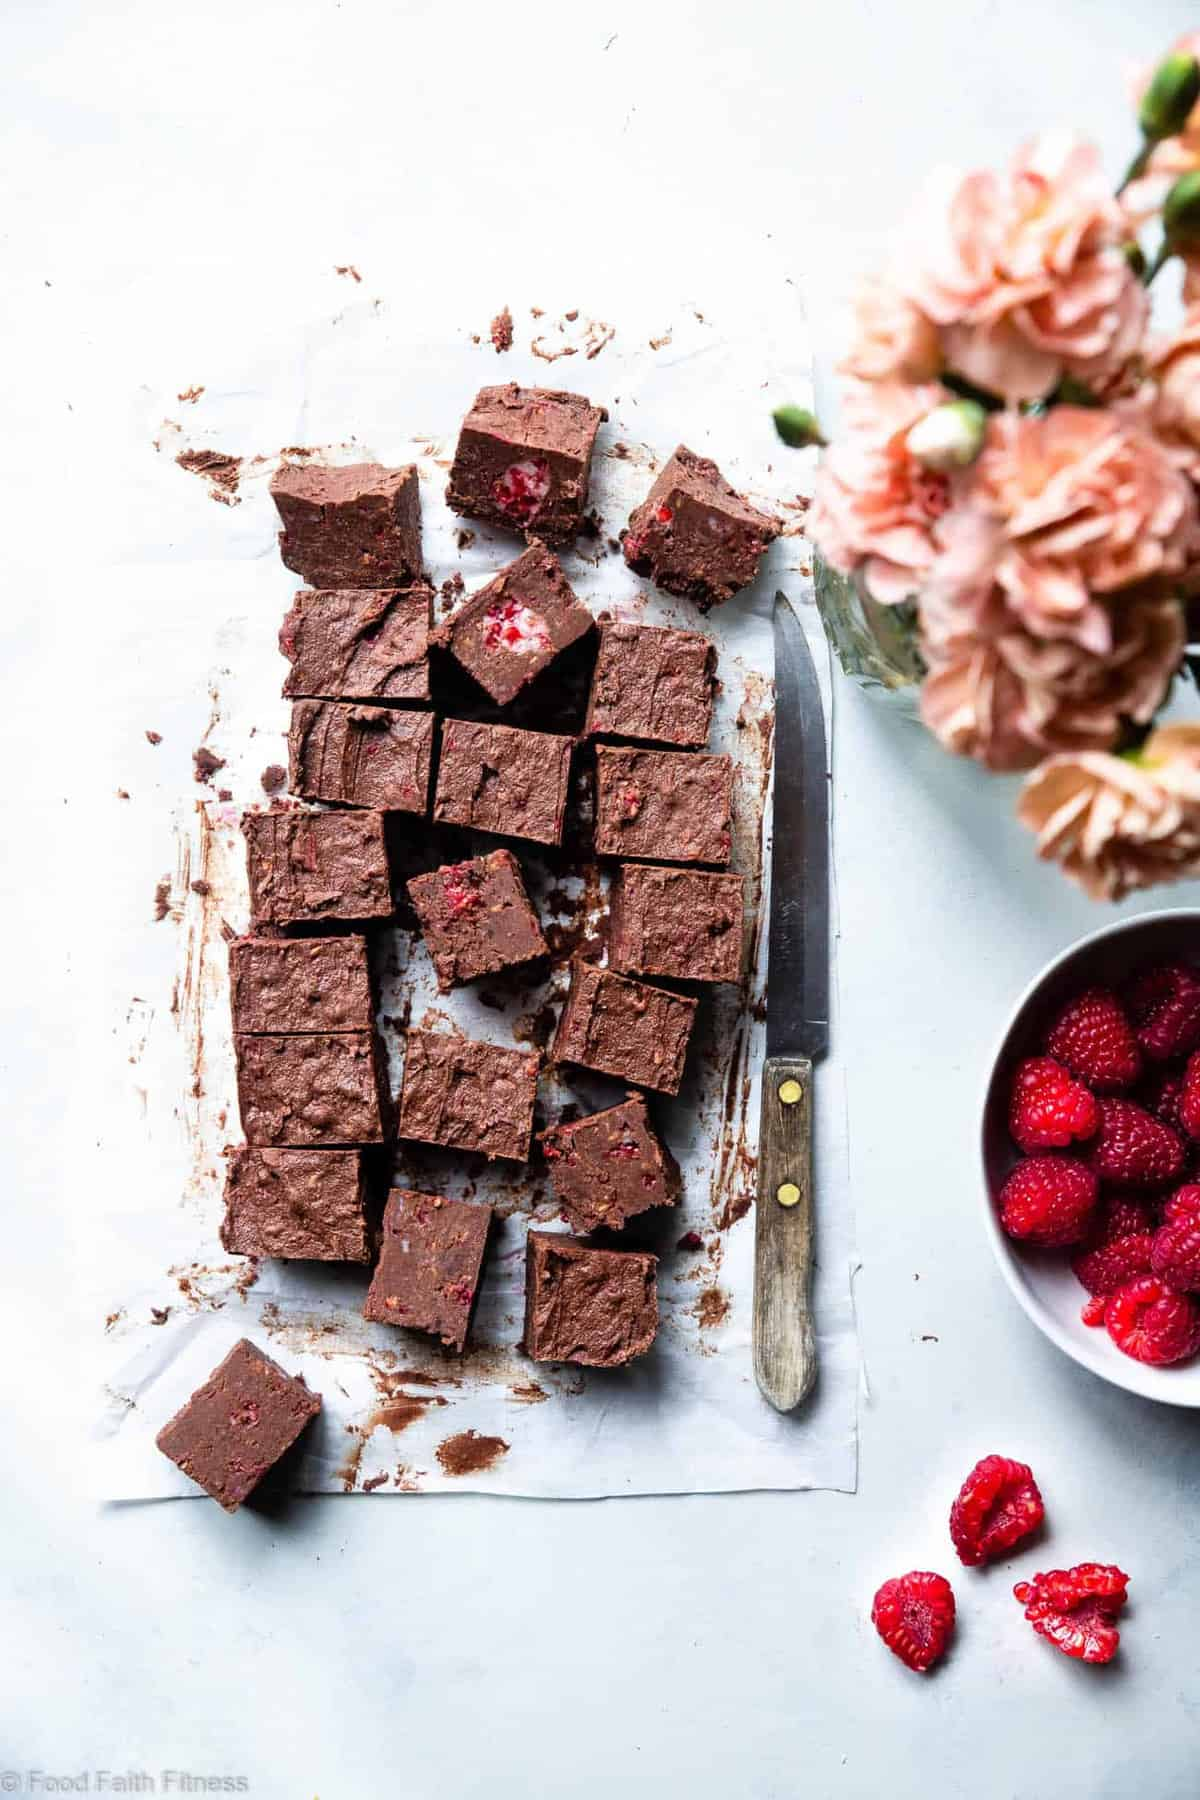 Chocolate Raspberry Paleo Coconut Oil Fudge - A healthy, quick and easy freezer fudge recipe with no thermometer needed! Gluten free, dairy free, vegan friendly and only 5 ingredients too! | #Foodfaithfitness |